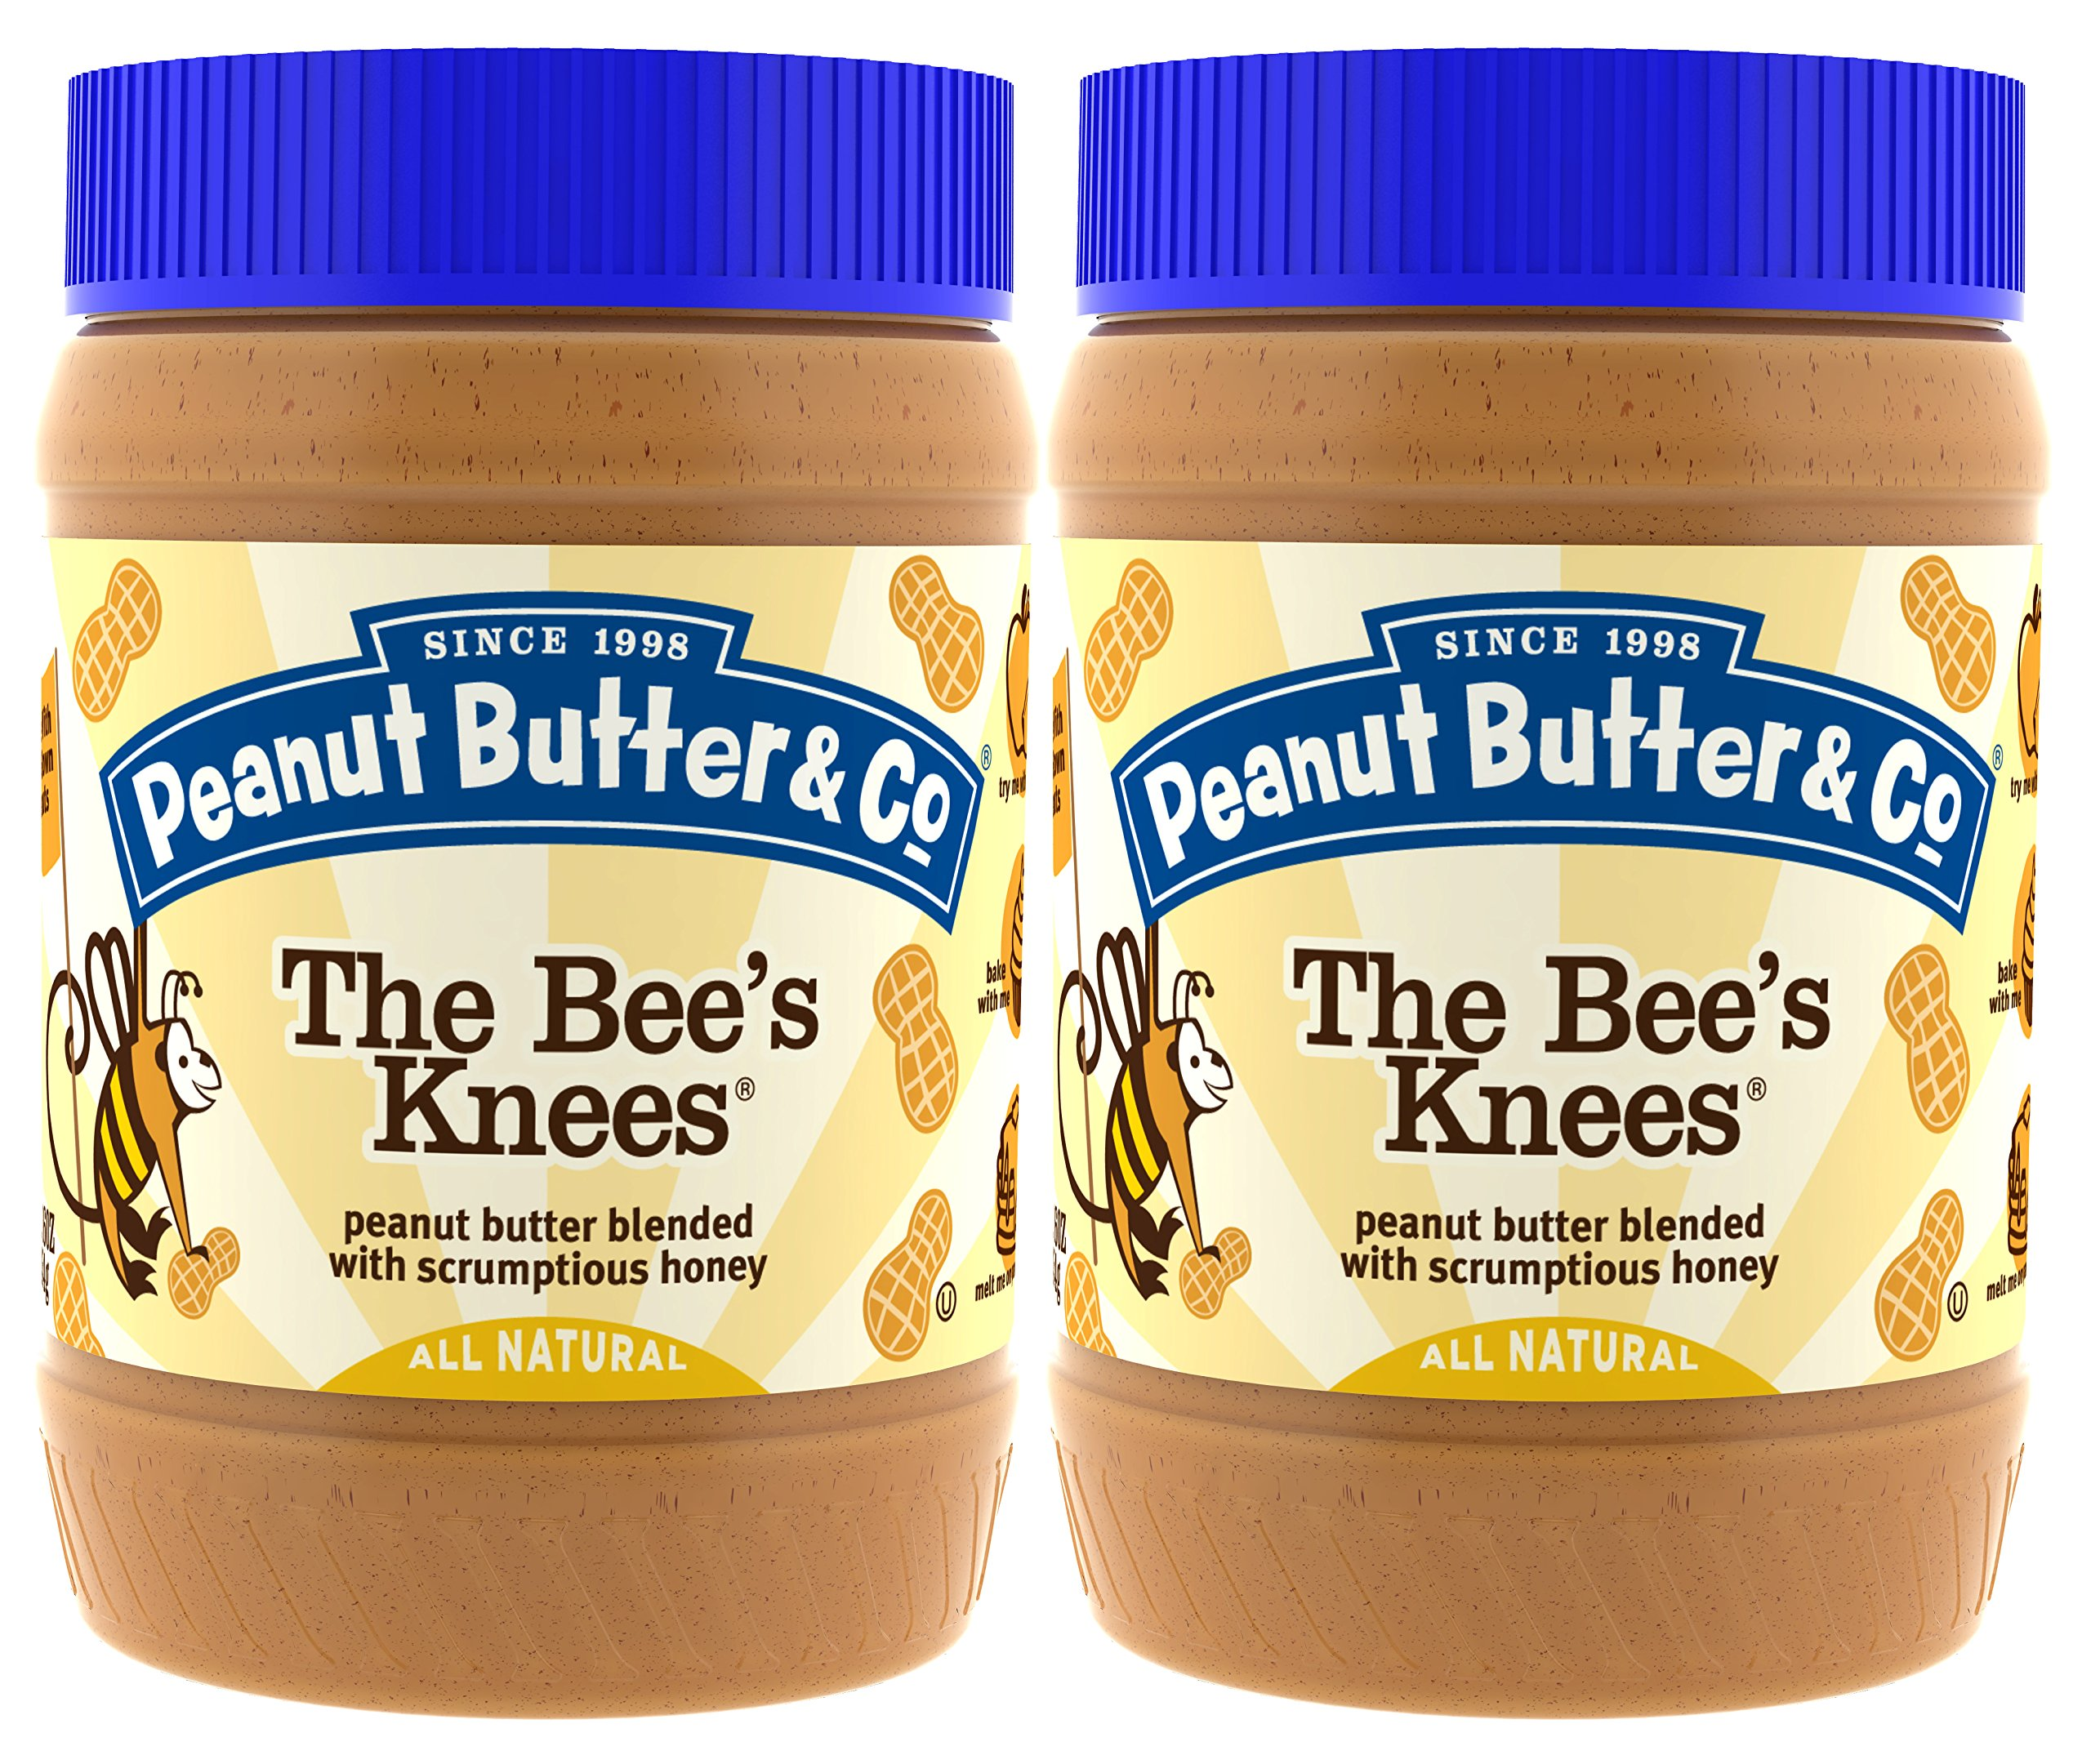 Peanut Butter & Co. Peanut Butter, Gluten Free, The Bee's Knees (Honey), 16 Ounce Jars (Pack of 2)